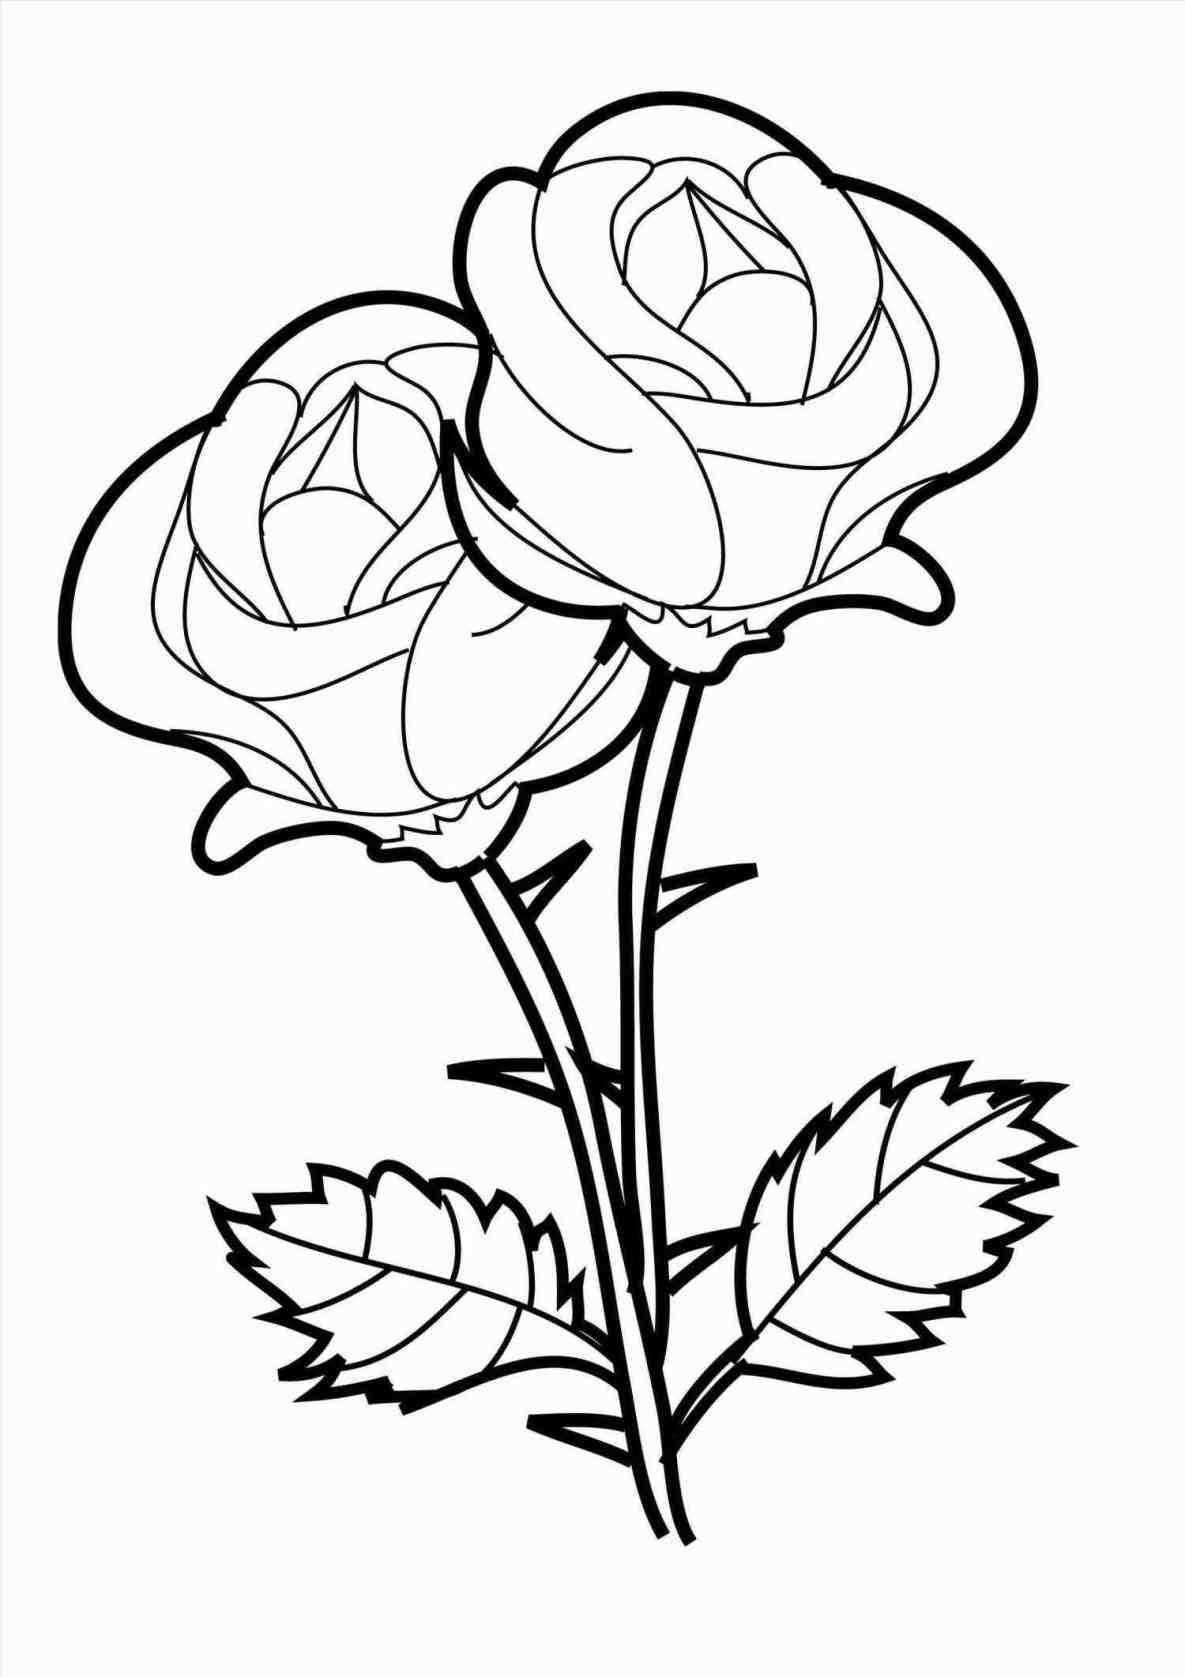 1185x1677 Heart Drawings Of Roses And Hearts With The Steps Rose In Pencil